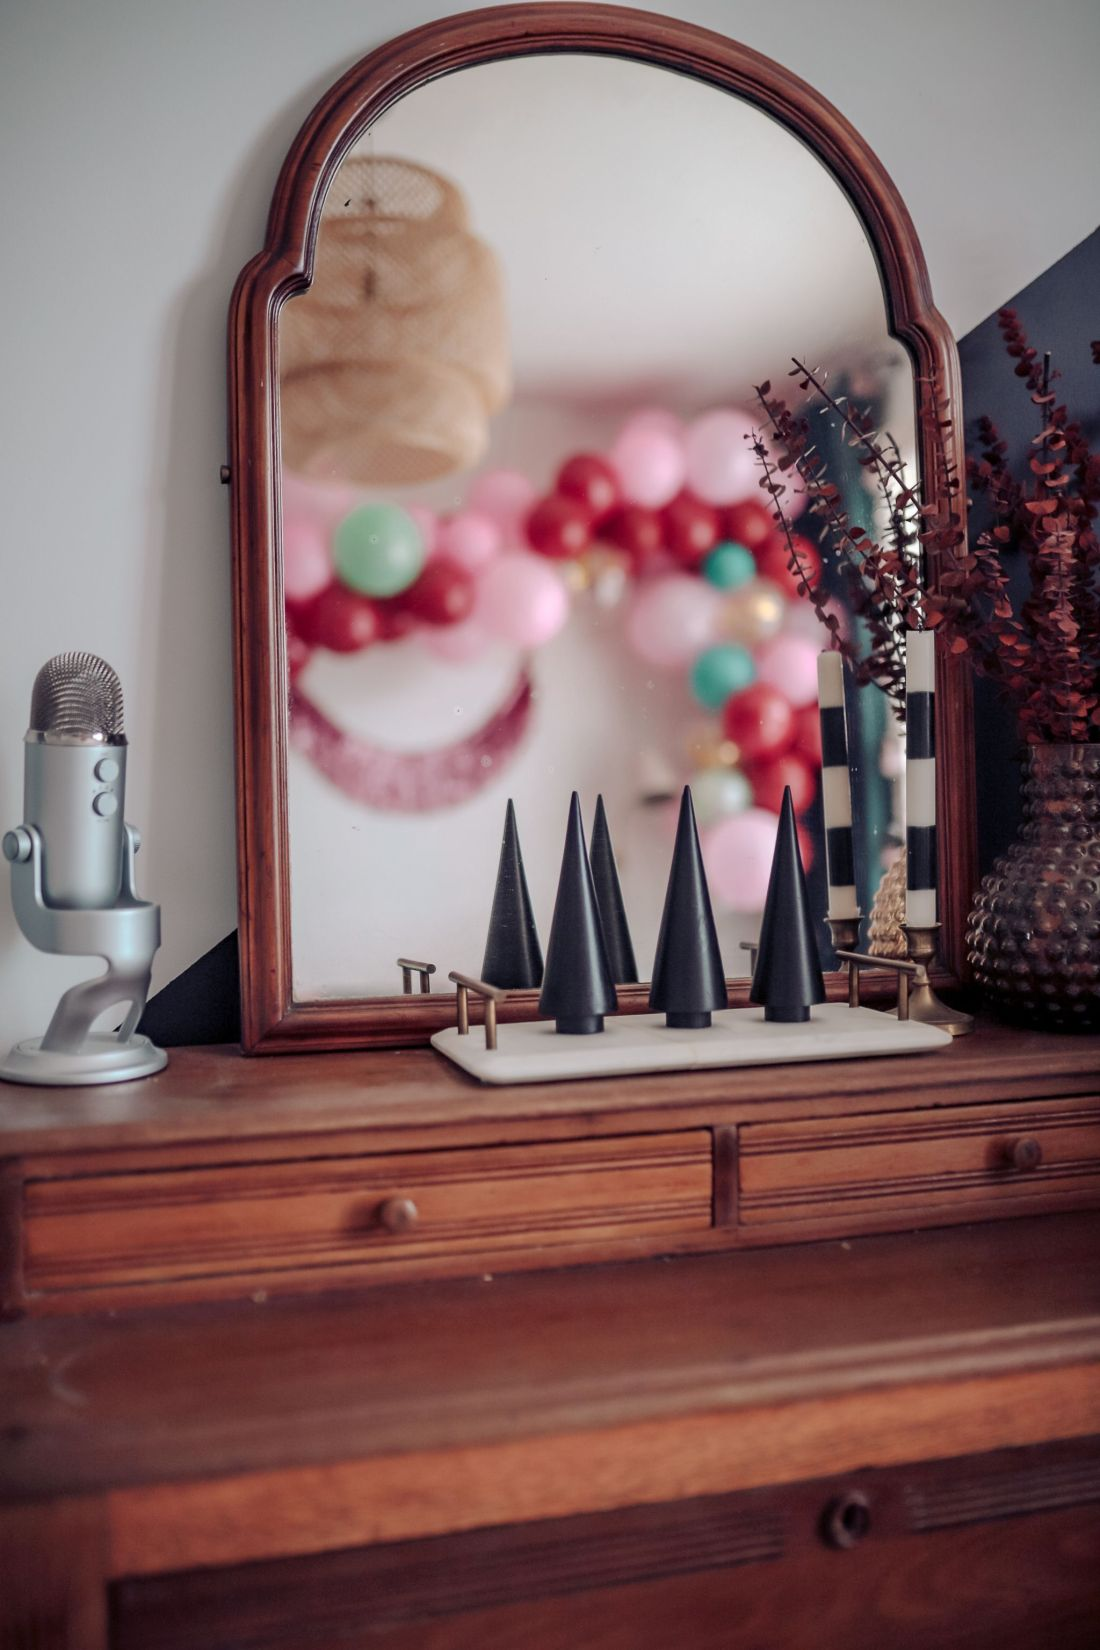 Carpet and Rug Institute by popular Nashville life and style blog, Modern Day Moguls: image of a wooden dresser decorated with a microphone, mirror, and marble and brass handle tray containing modern black Christmas tree decor.